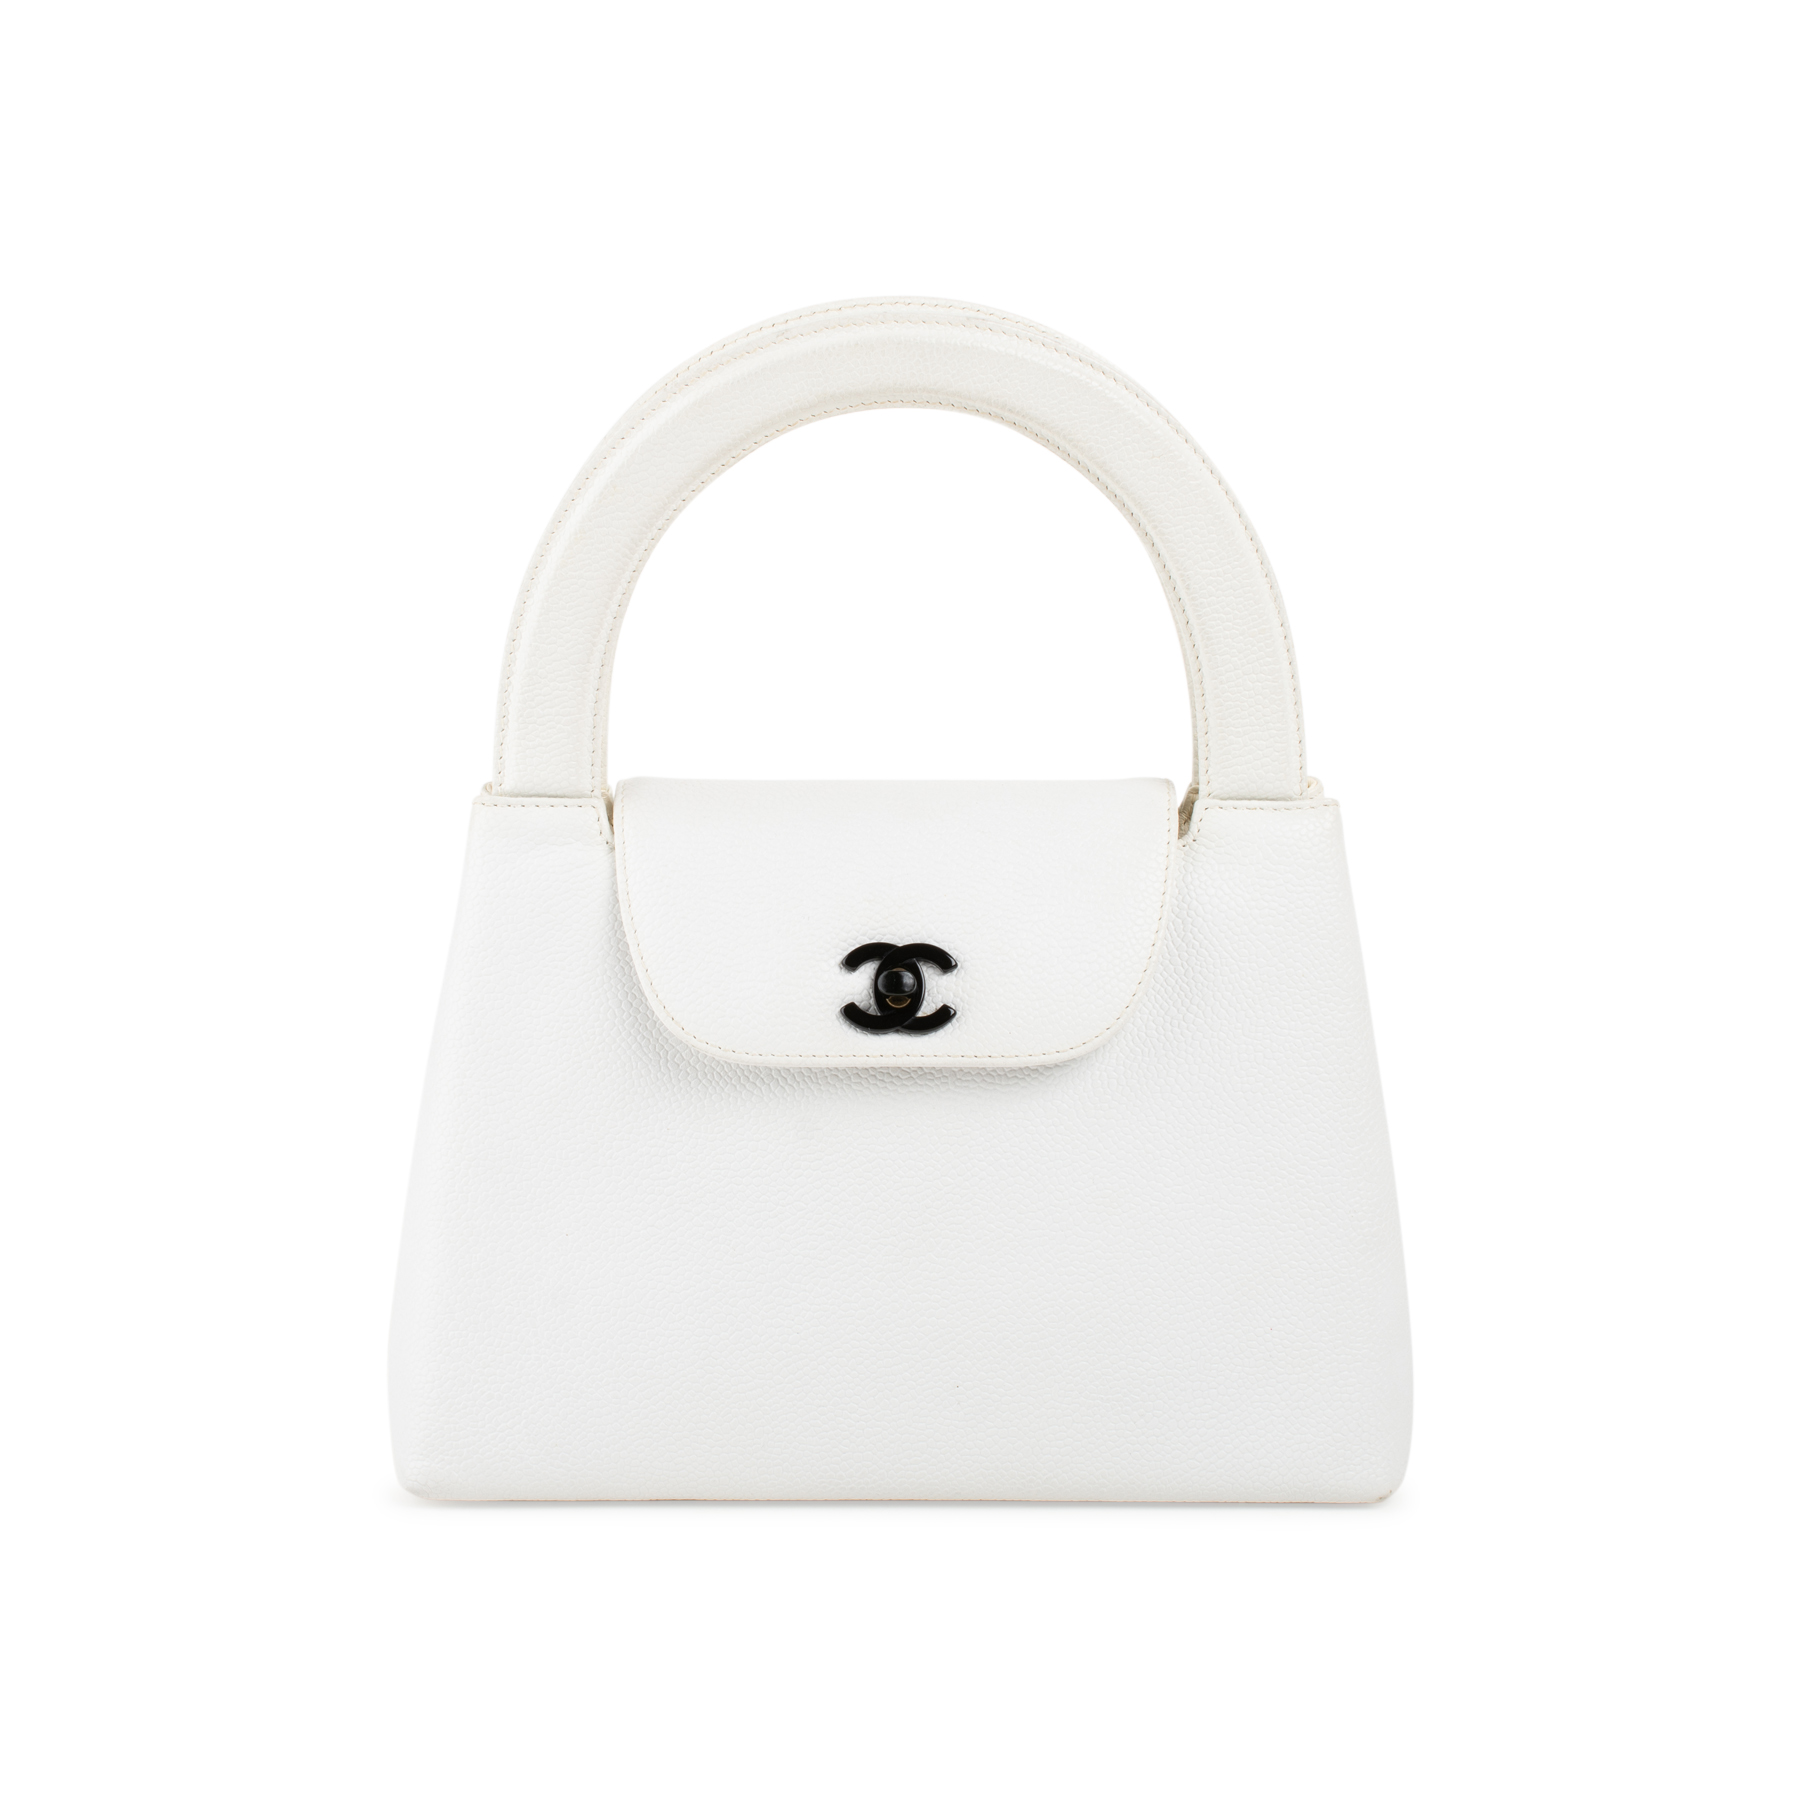 0aabcf0e6a4f Authentic Vintage Chanel Kelly Mini Flap Bag (PSS-616-00002) | THE FIFTH  COLLECTION